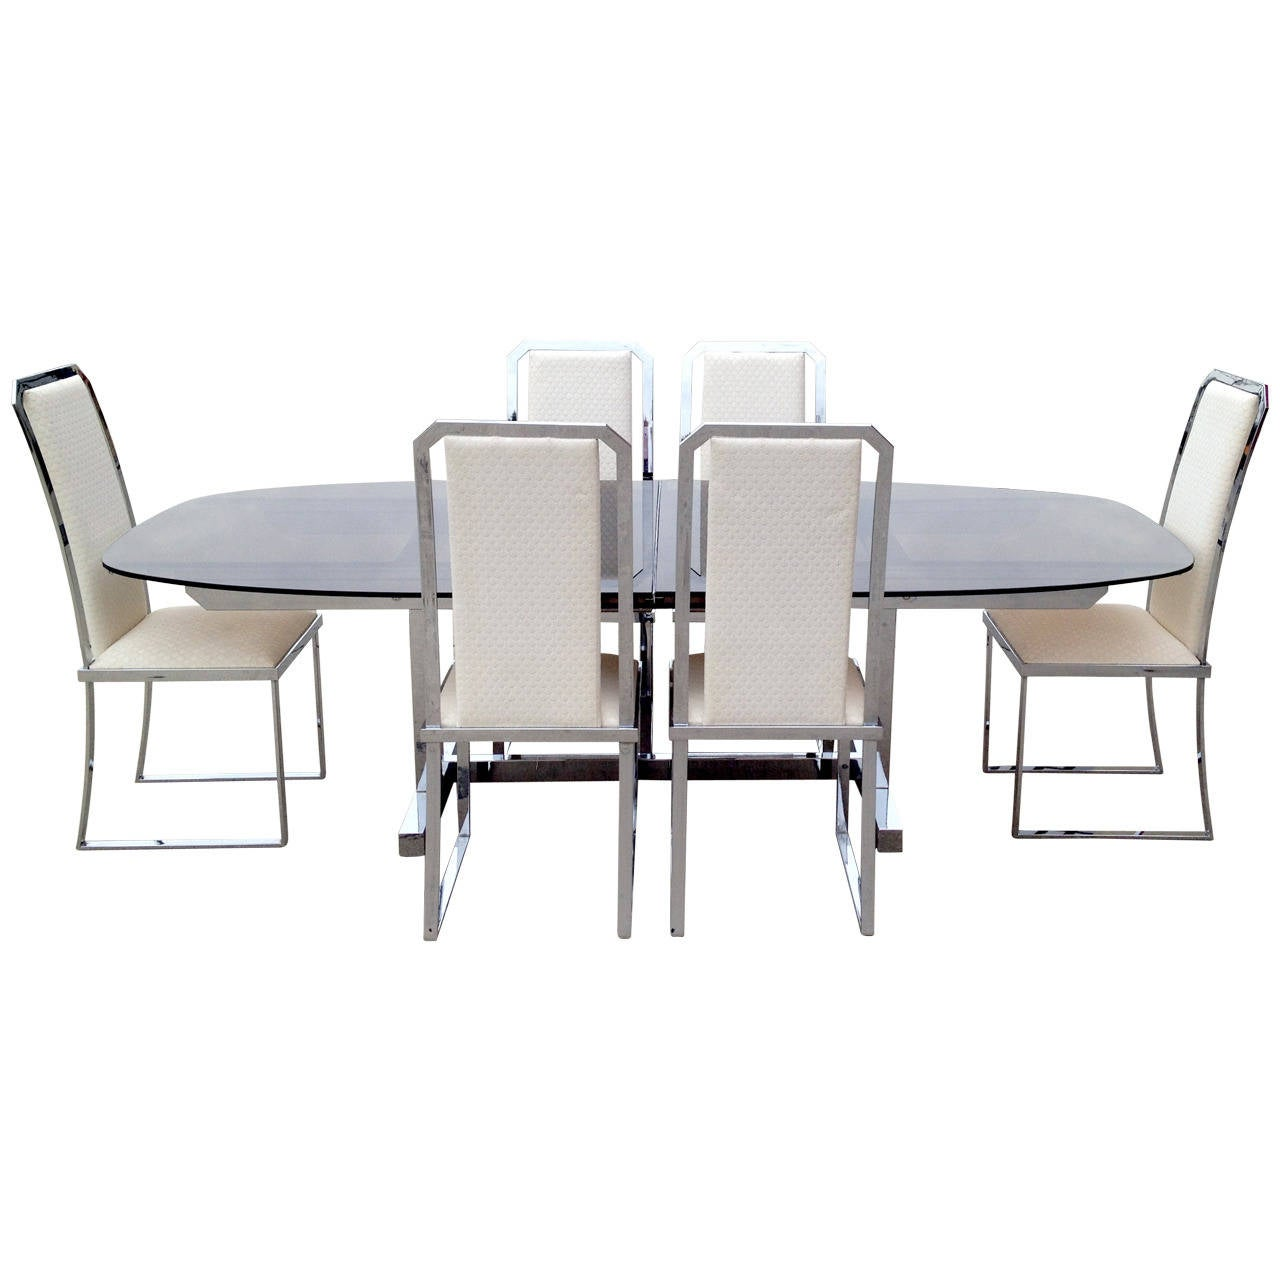 1970s dining set in the manner of milo baughman at 1stdibs